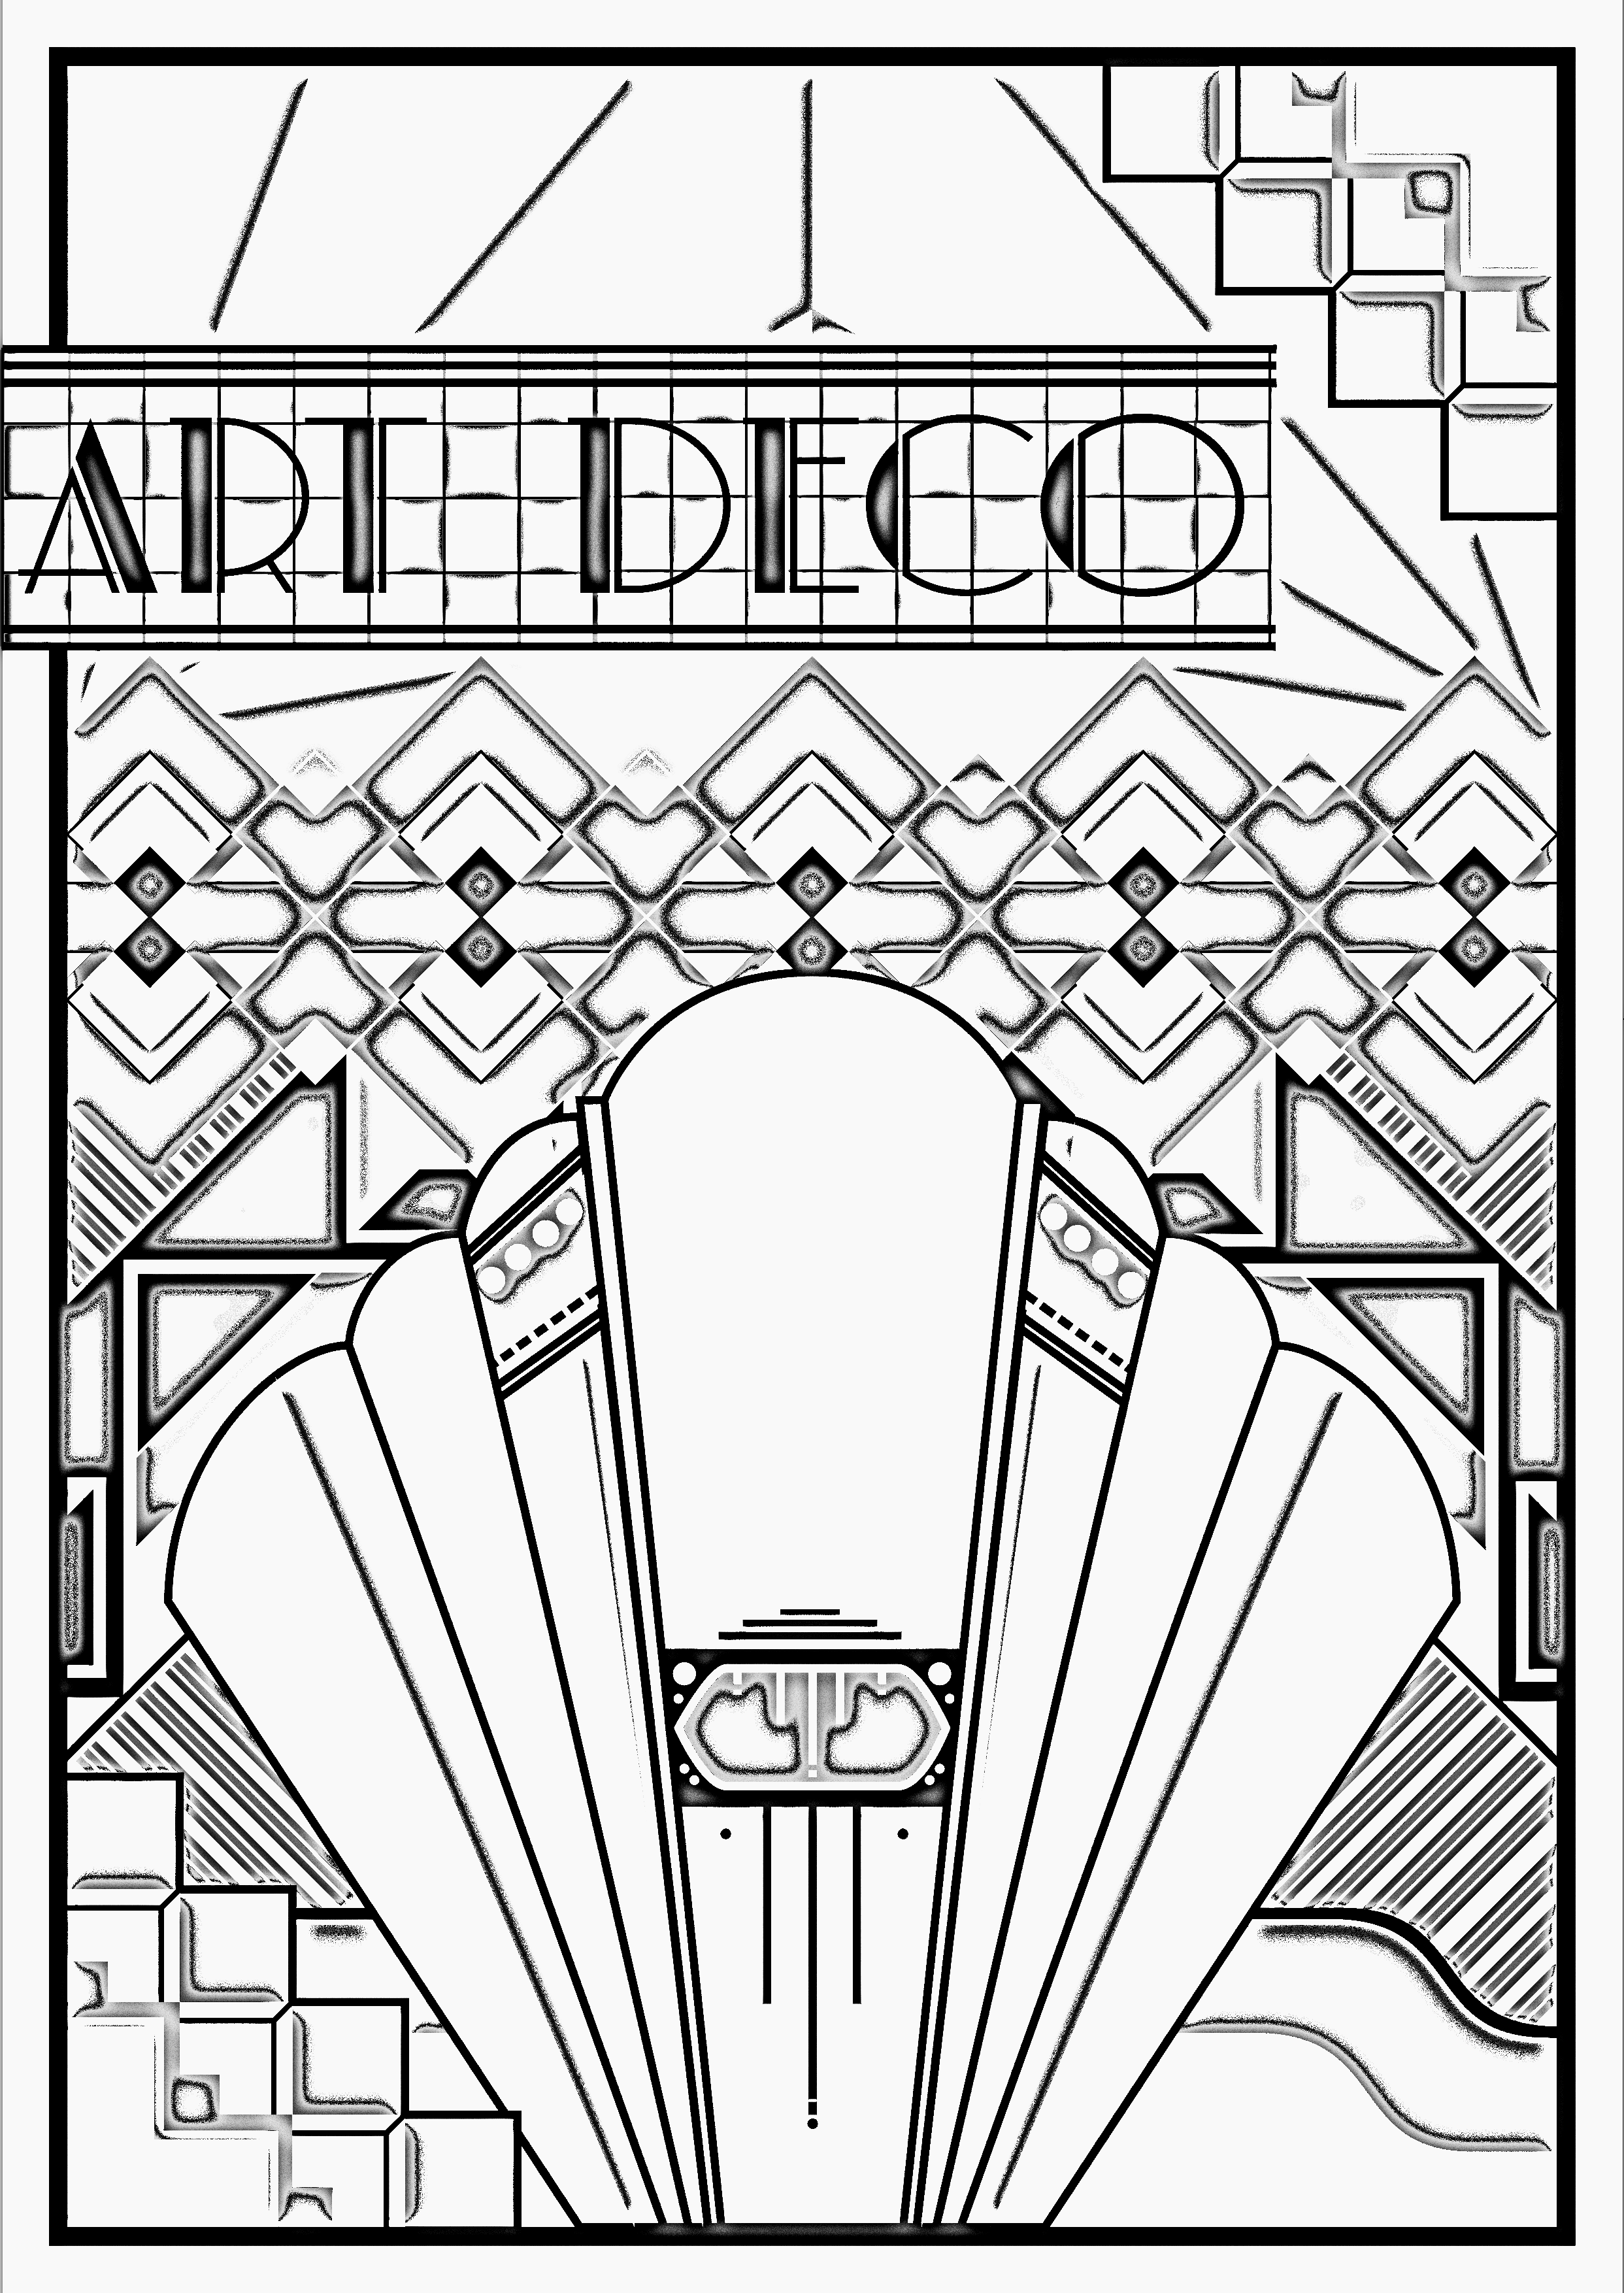 2485x3508 Art Deco Coloring Pages Poster For Adults Justcolor